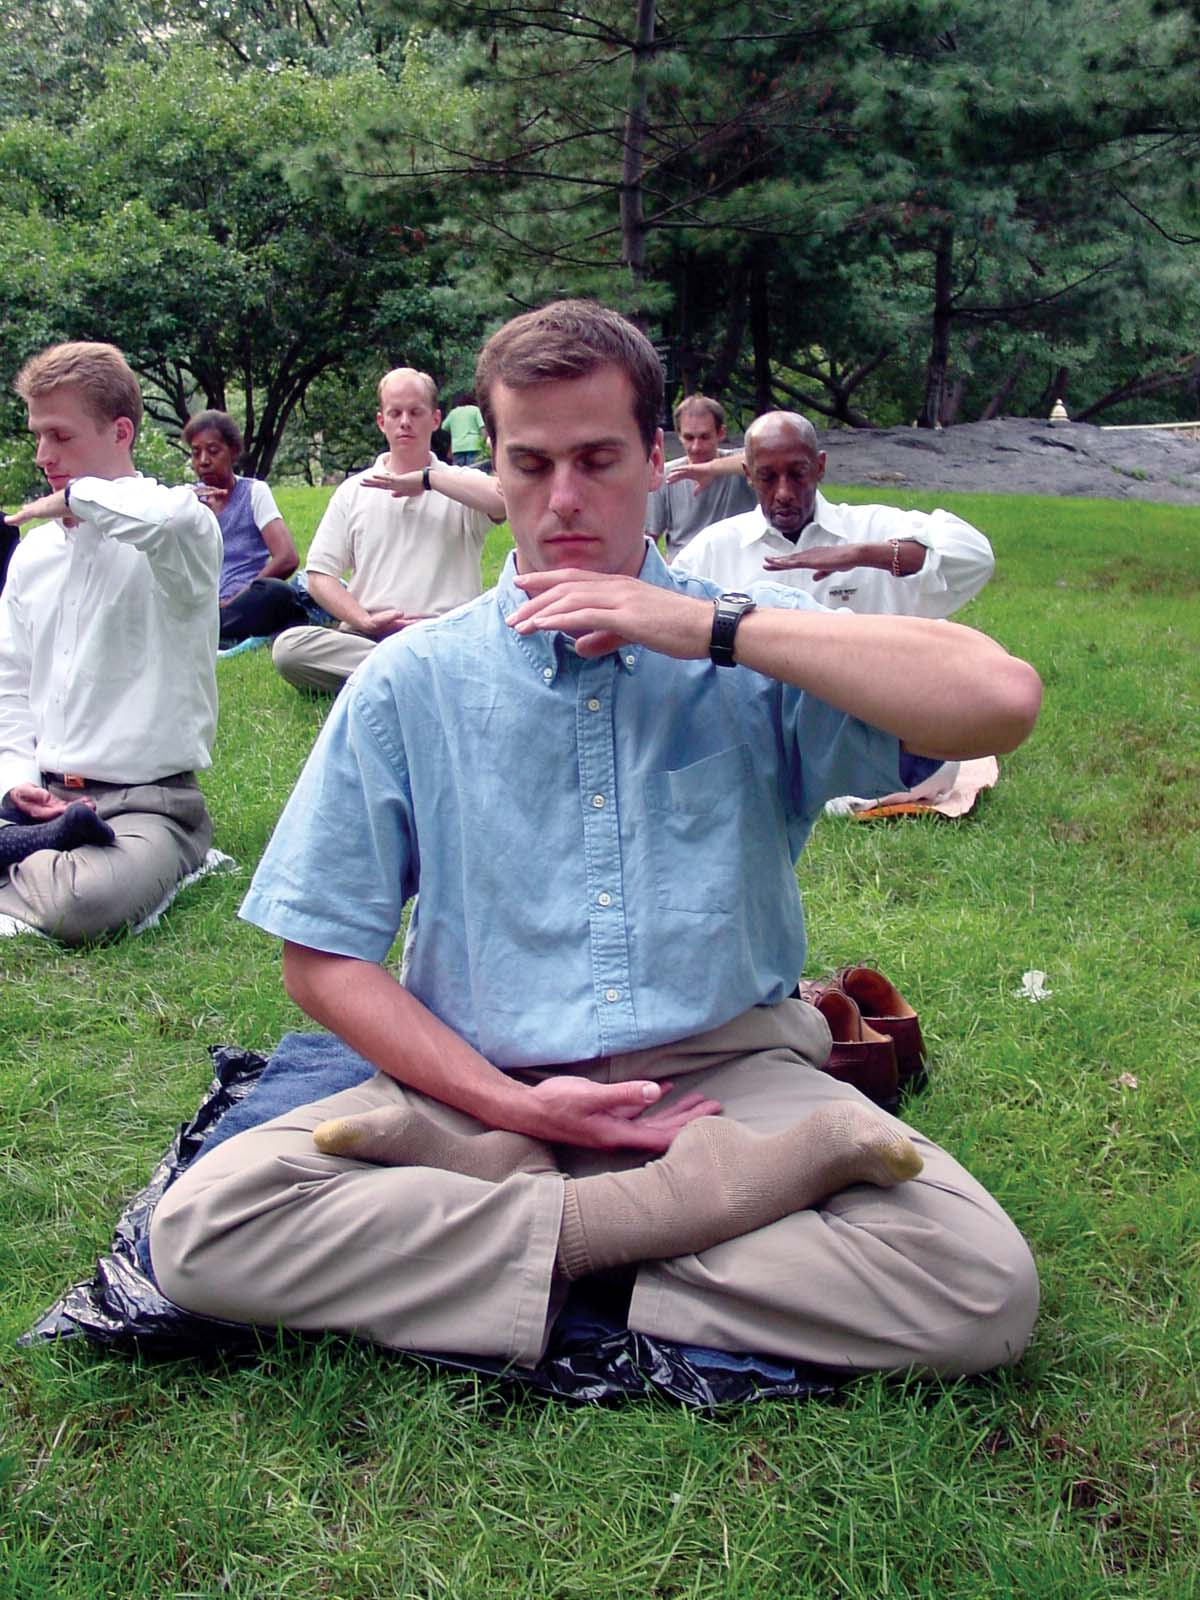 An American student of Falun Gong performs the practice's meditation,  tapping into a many centuries old Chinese tradition.